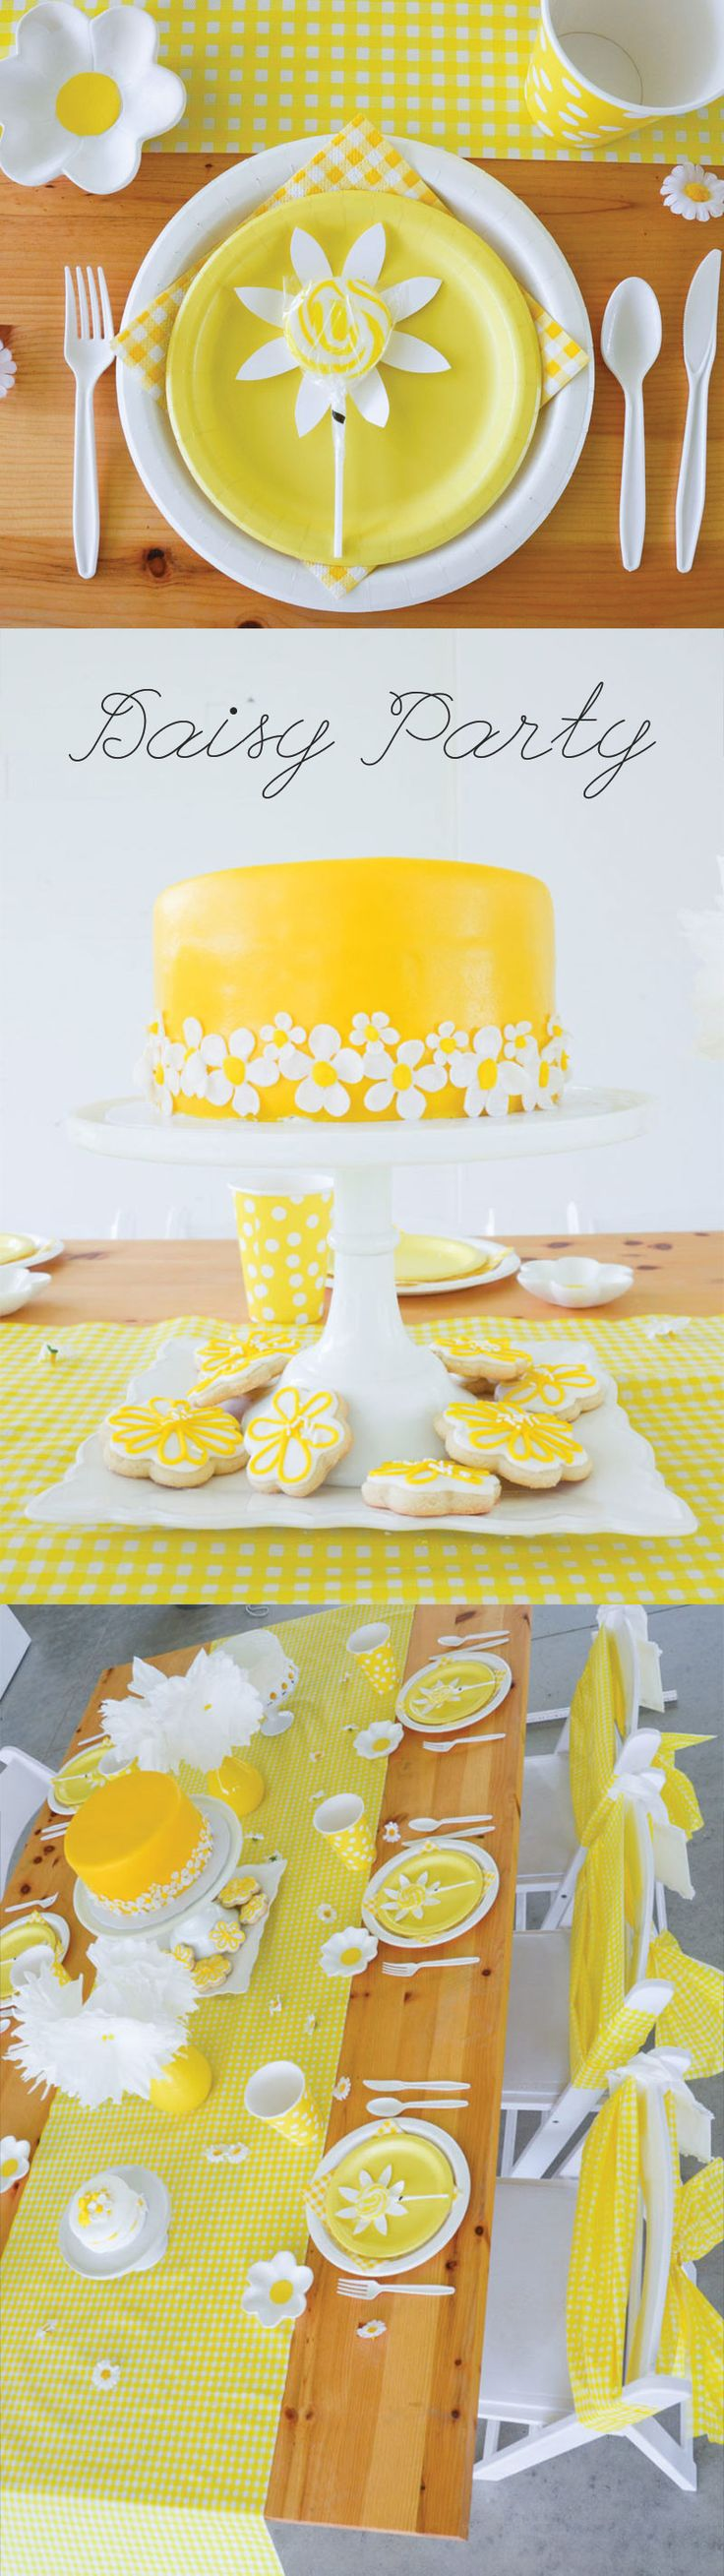 best letus have a party images on pinterest birthday party